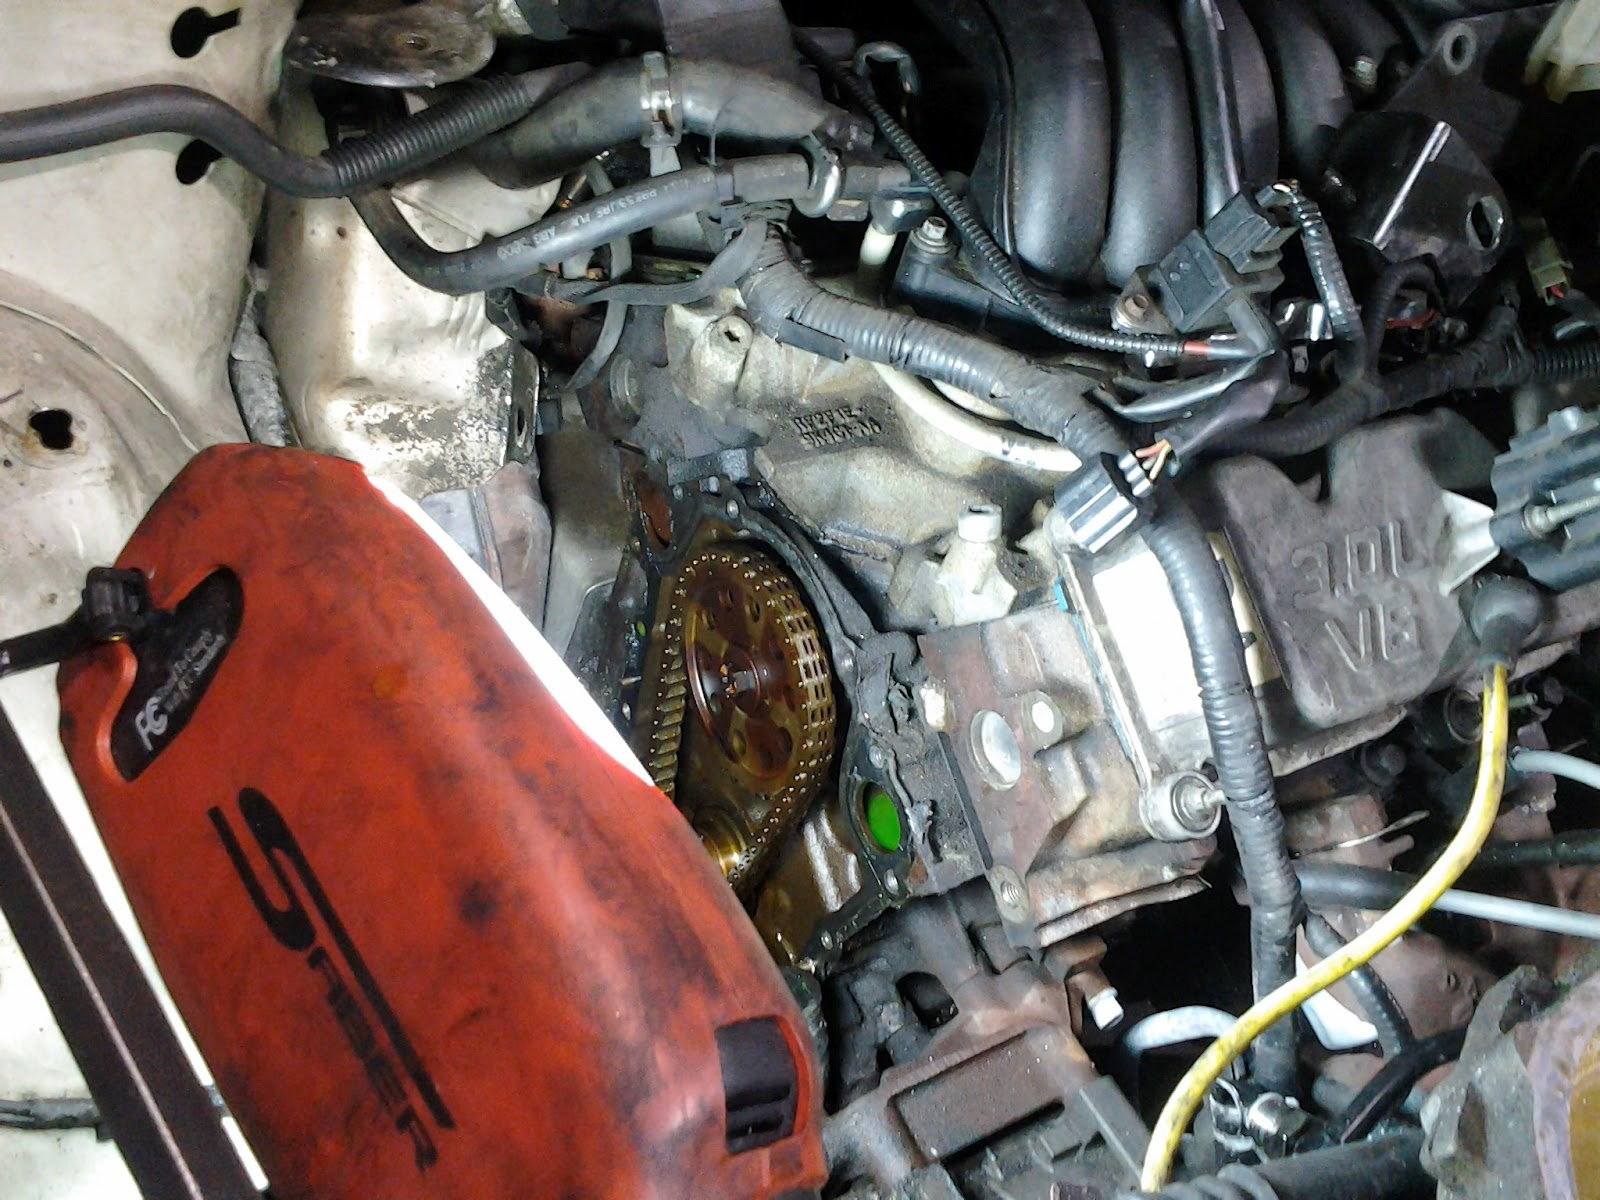 2002 Ford Taurus V6 3 0L VIN u Coolant Leak from Timing Cover